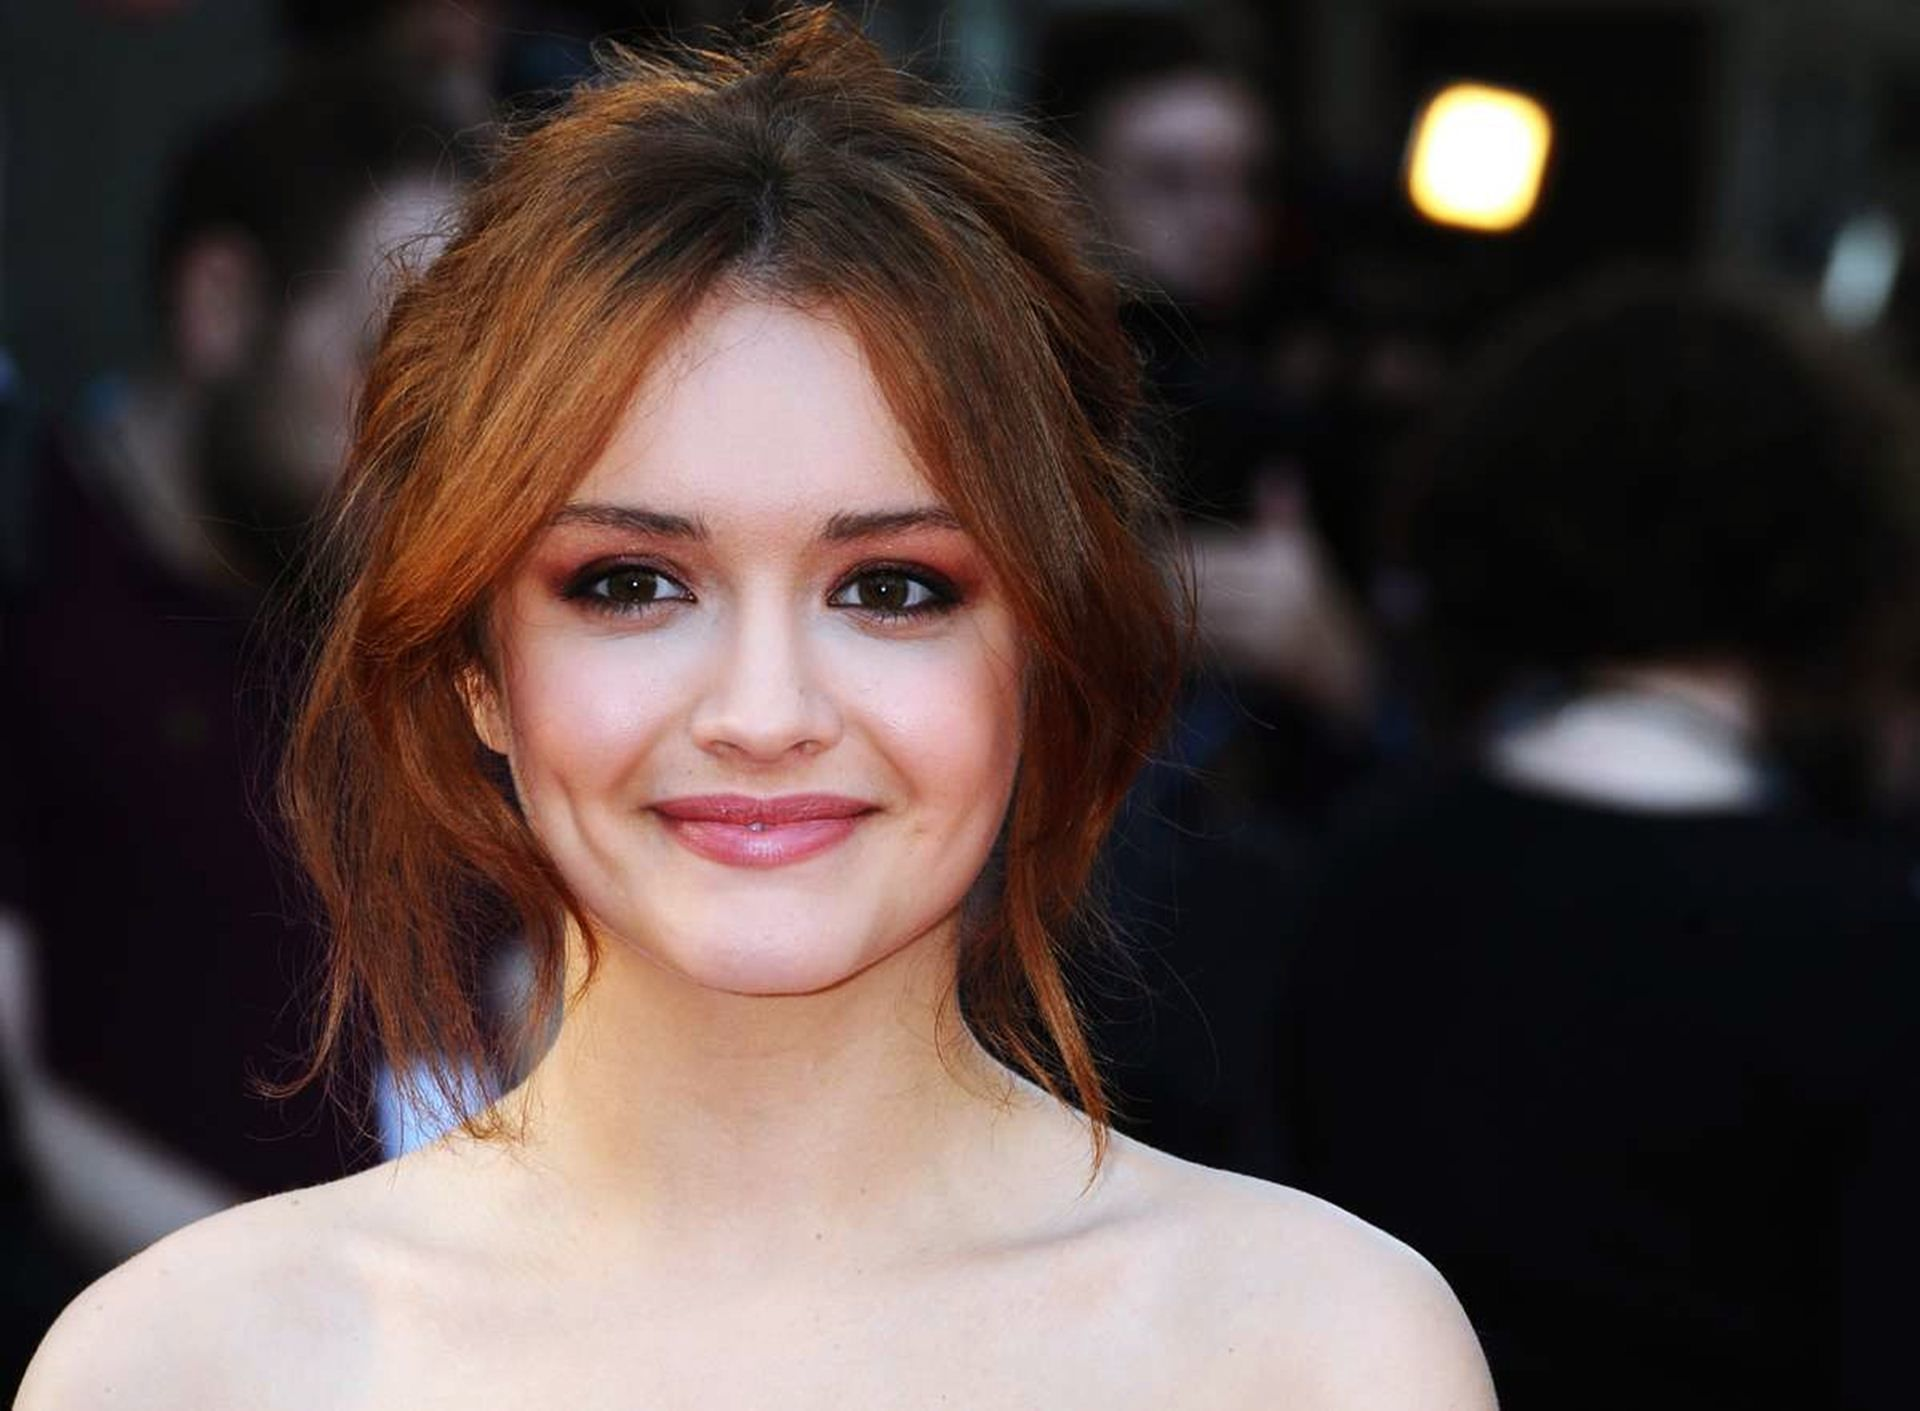 Cute Iphone Wallpapers For Girls Olivia Cooke Wallpapers High Resolution And Quality Download